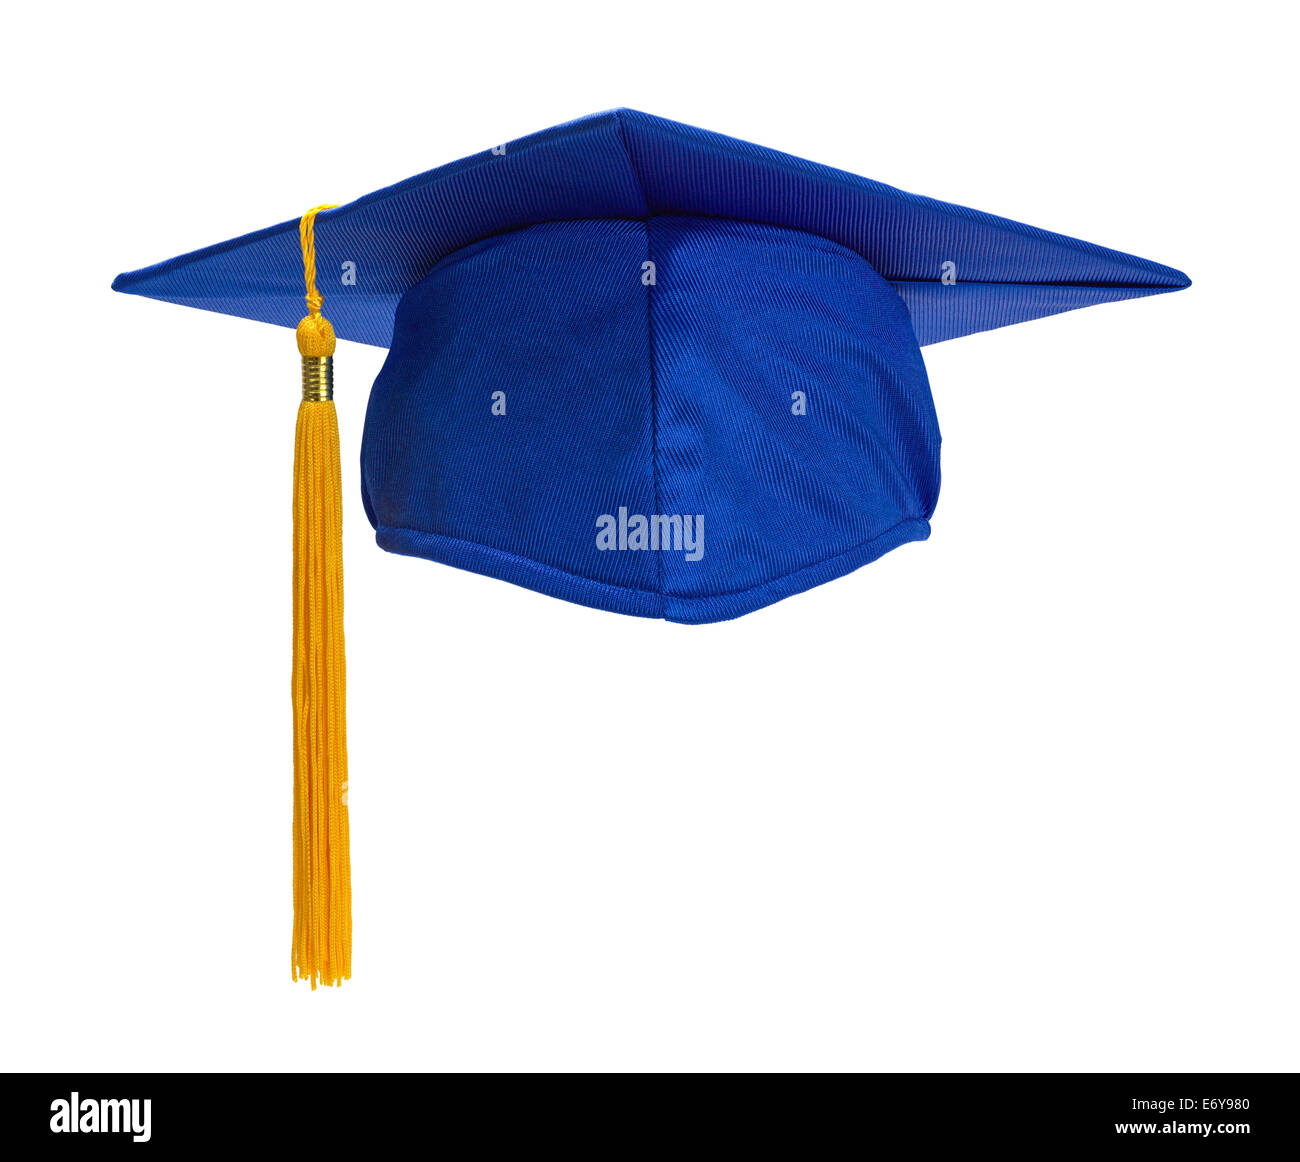 Blue Graduation Hat with Gold Tassel Isolated on White Background. - Stock Image